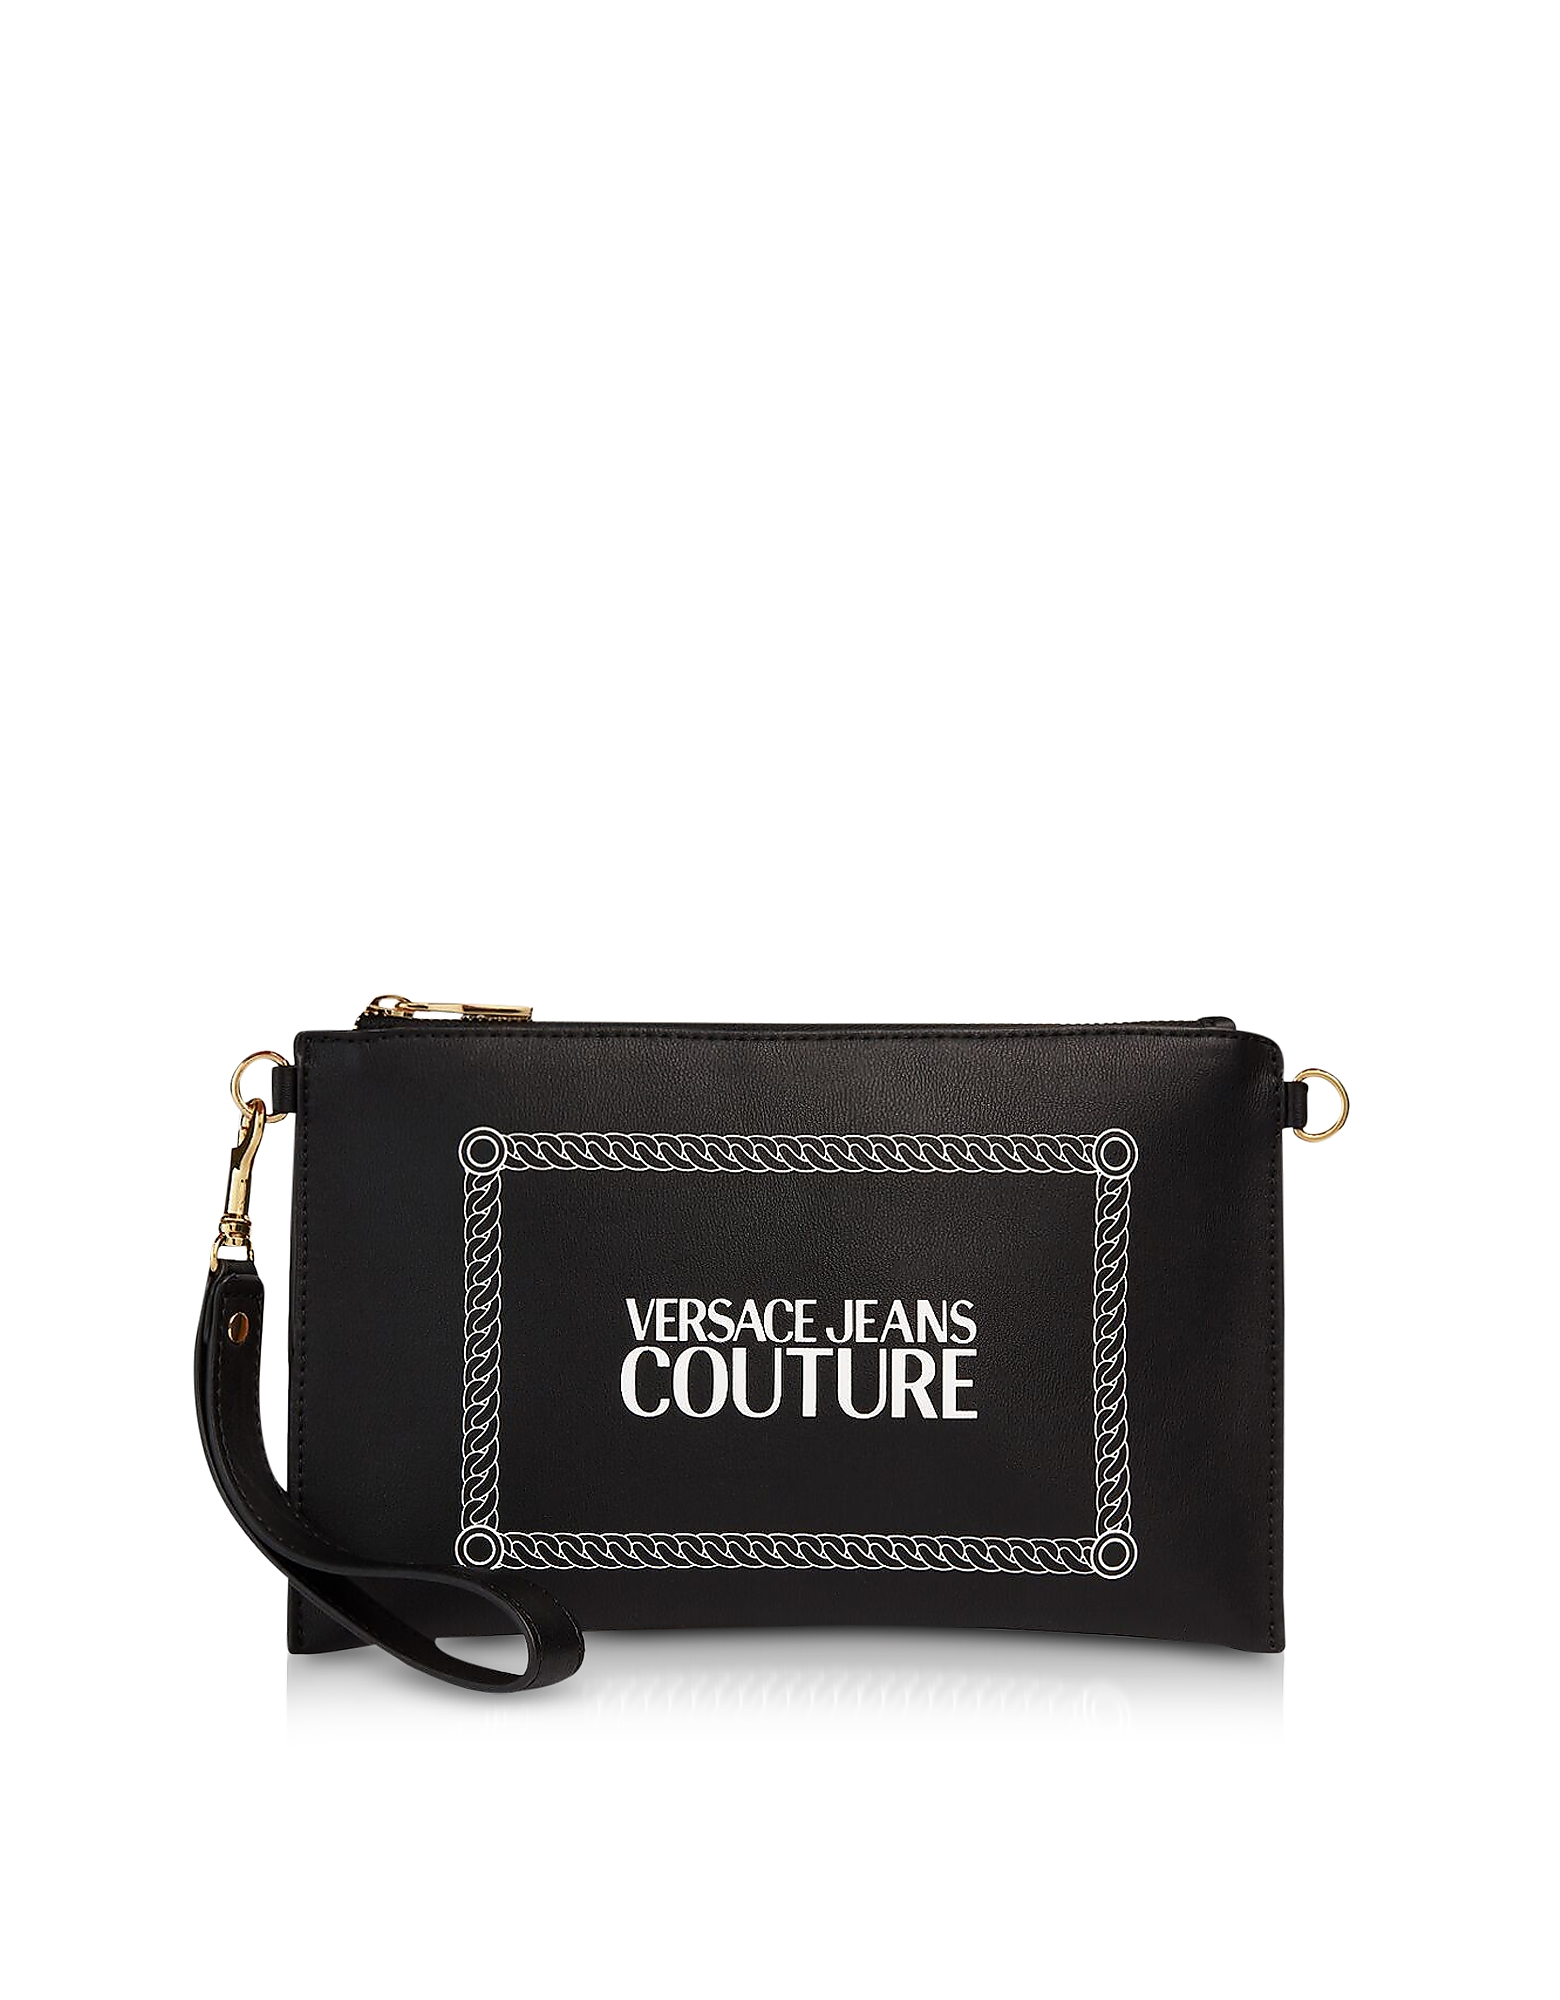 Versace Jeans Couture Designer Wallets, Black and White Signature Wallet Clutch w/Shoulder Strap